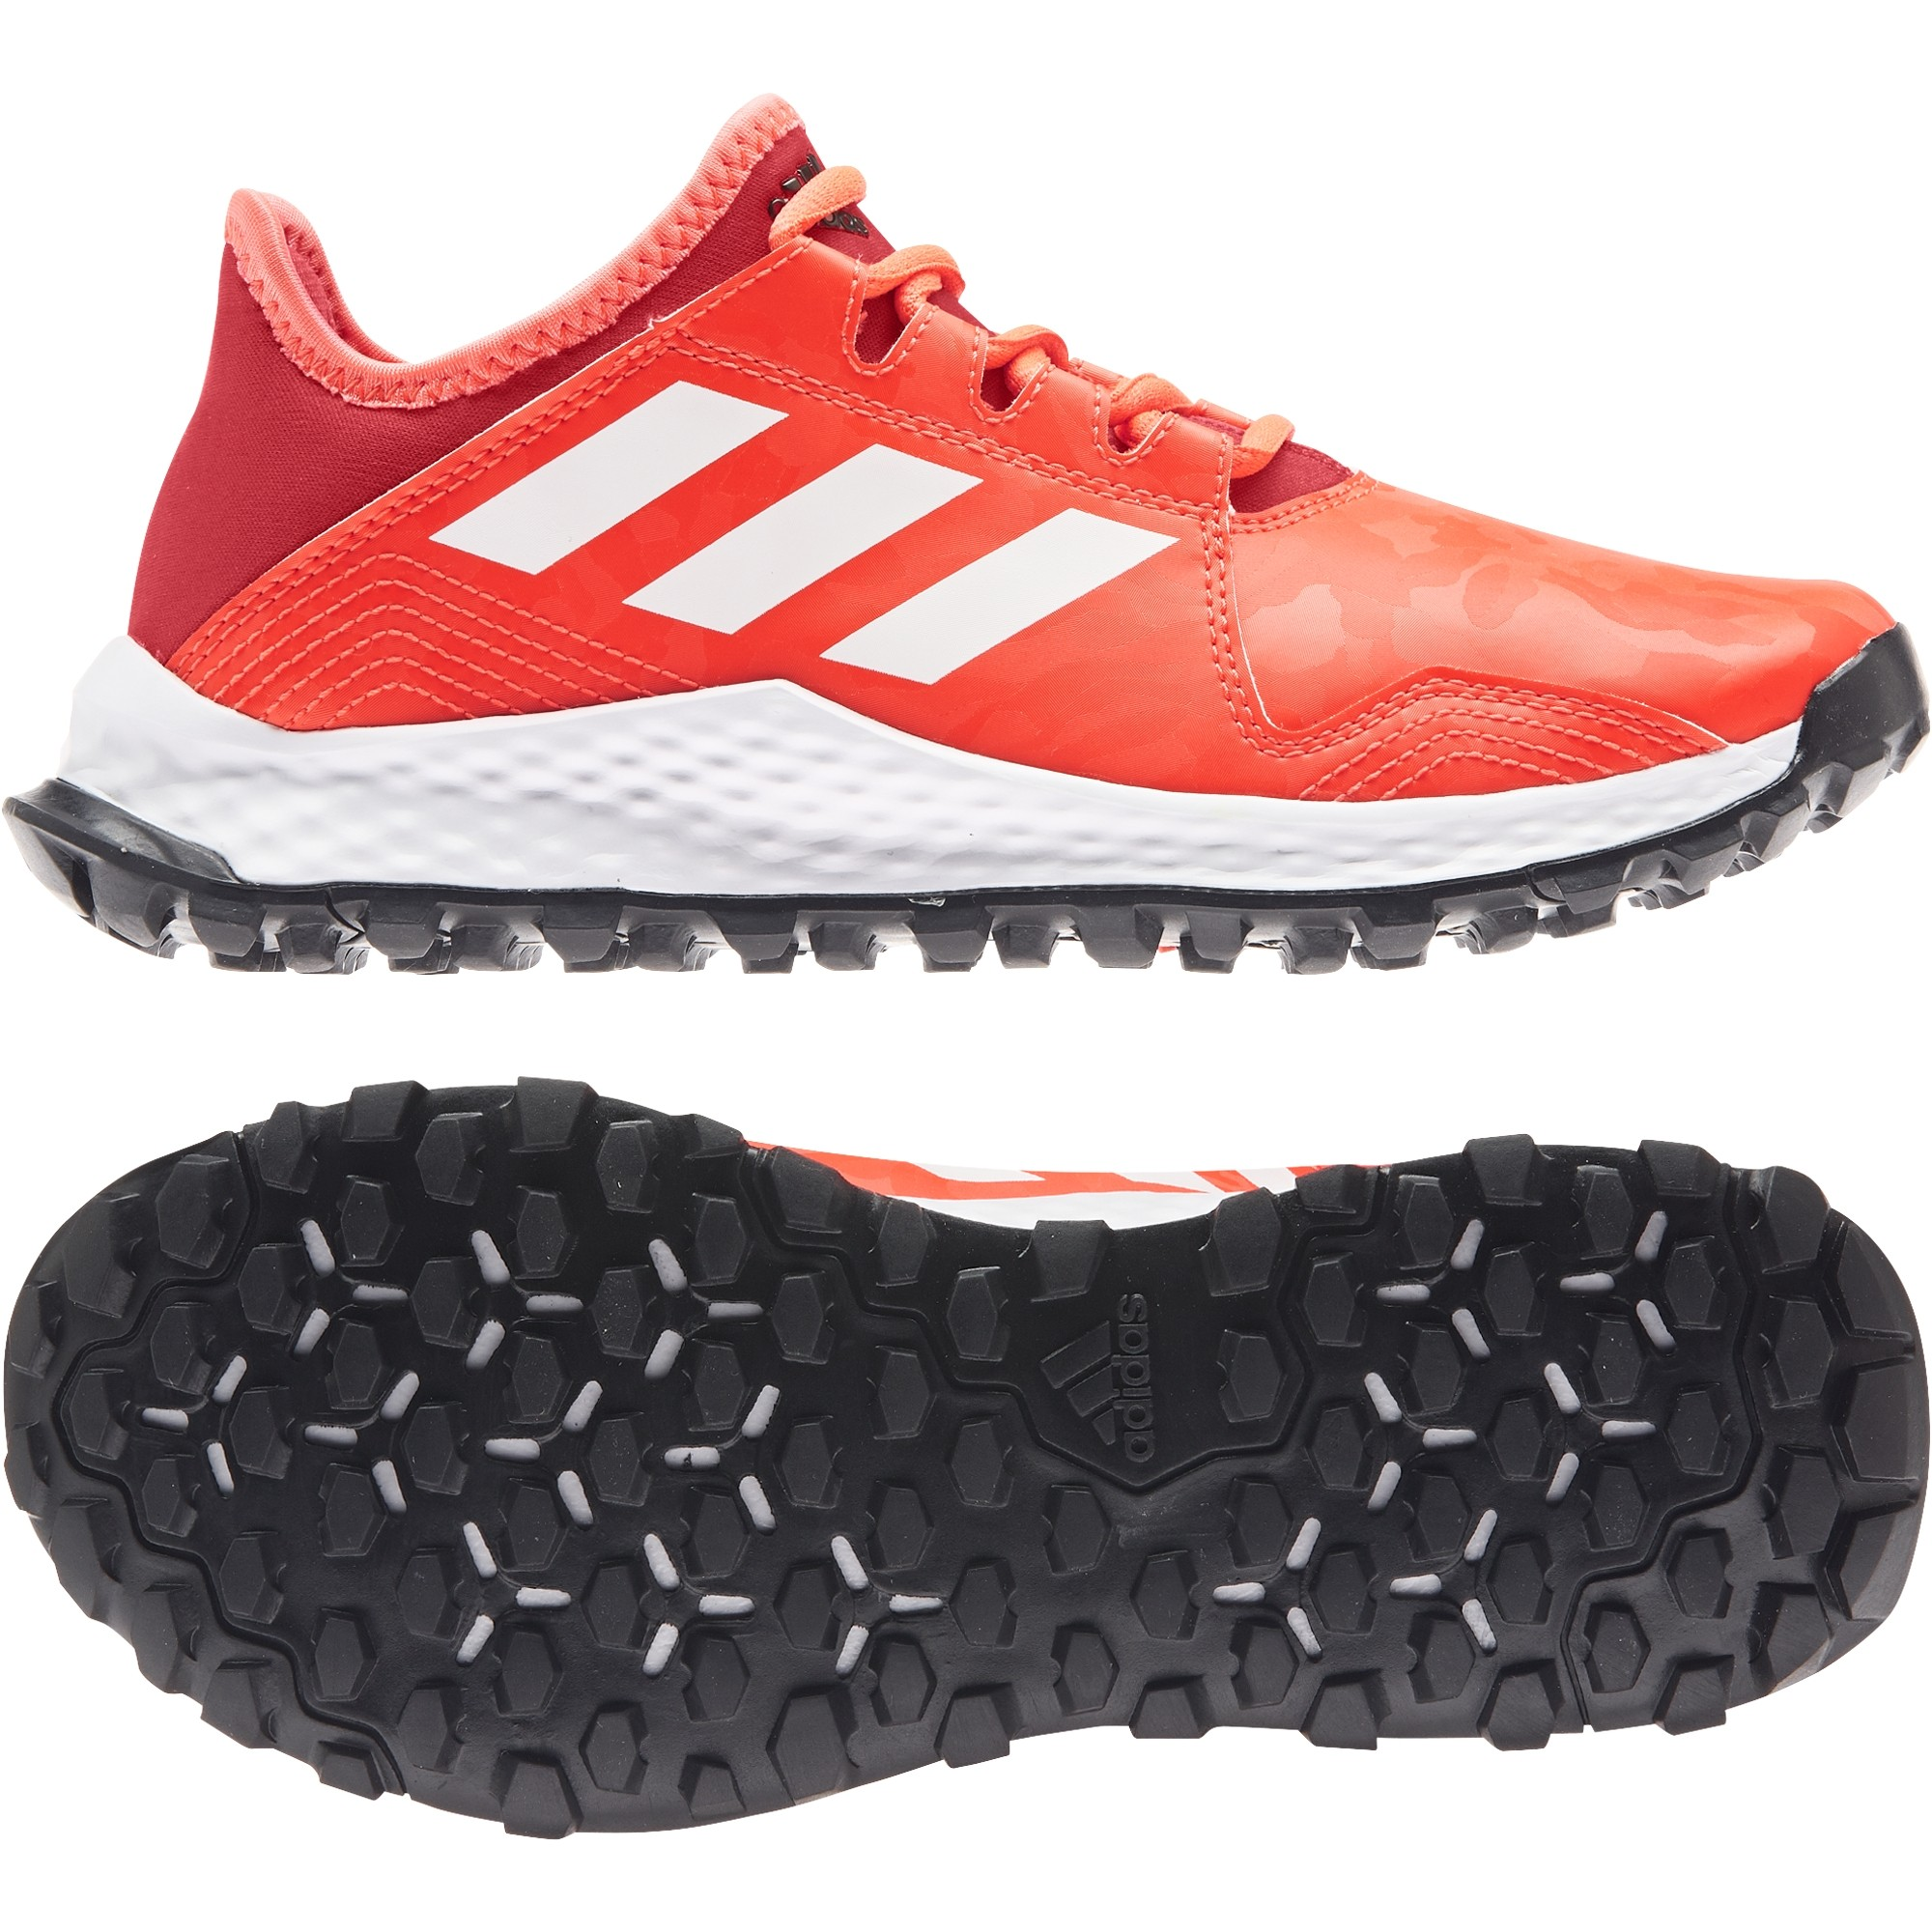 2021/22 Adidas Youngstar Hockey Shoes - Red/White